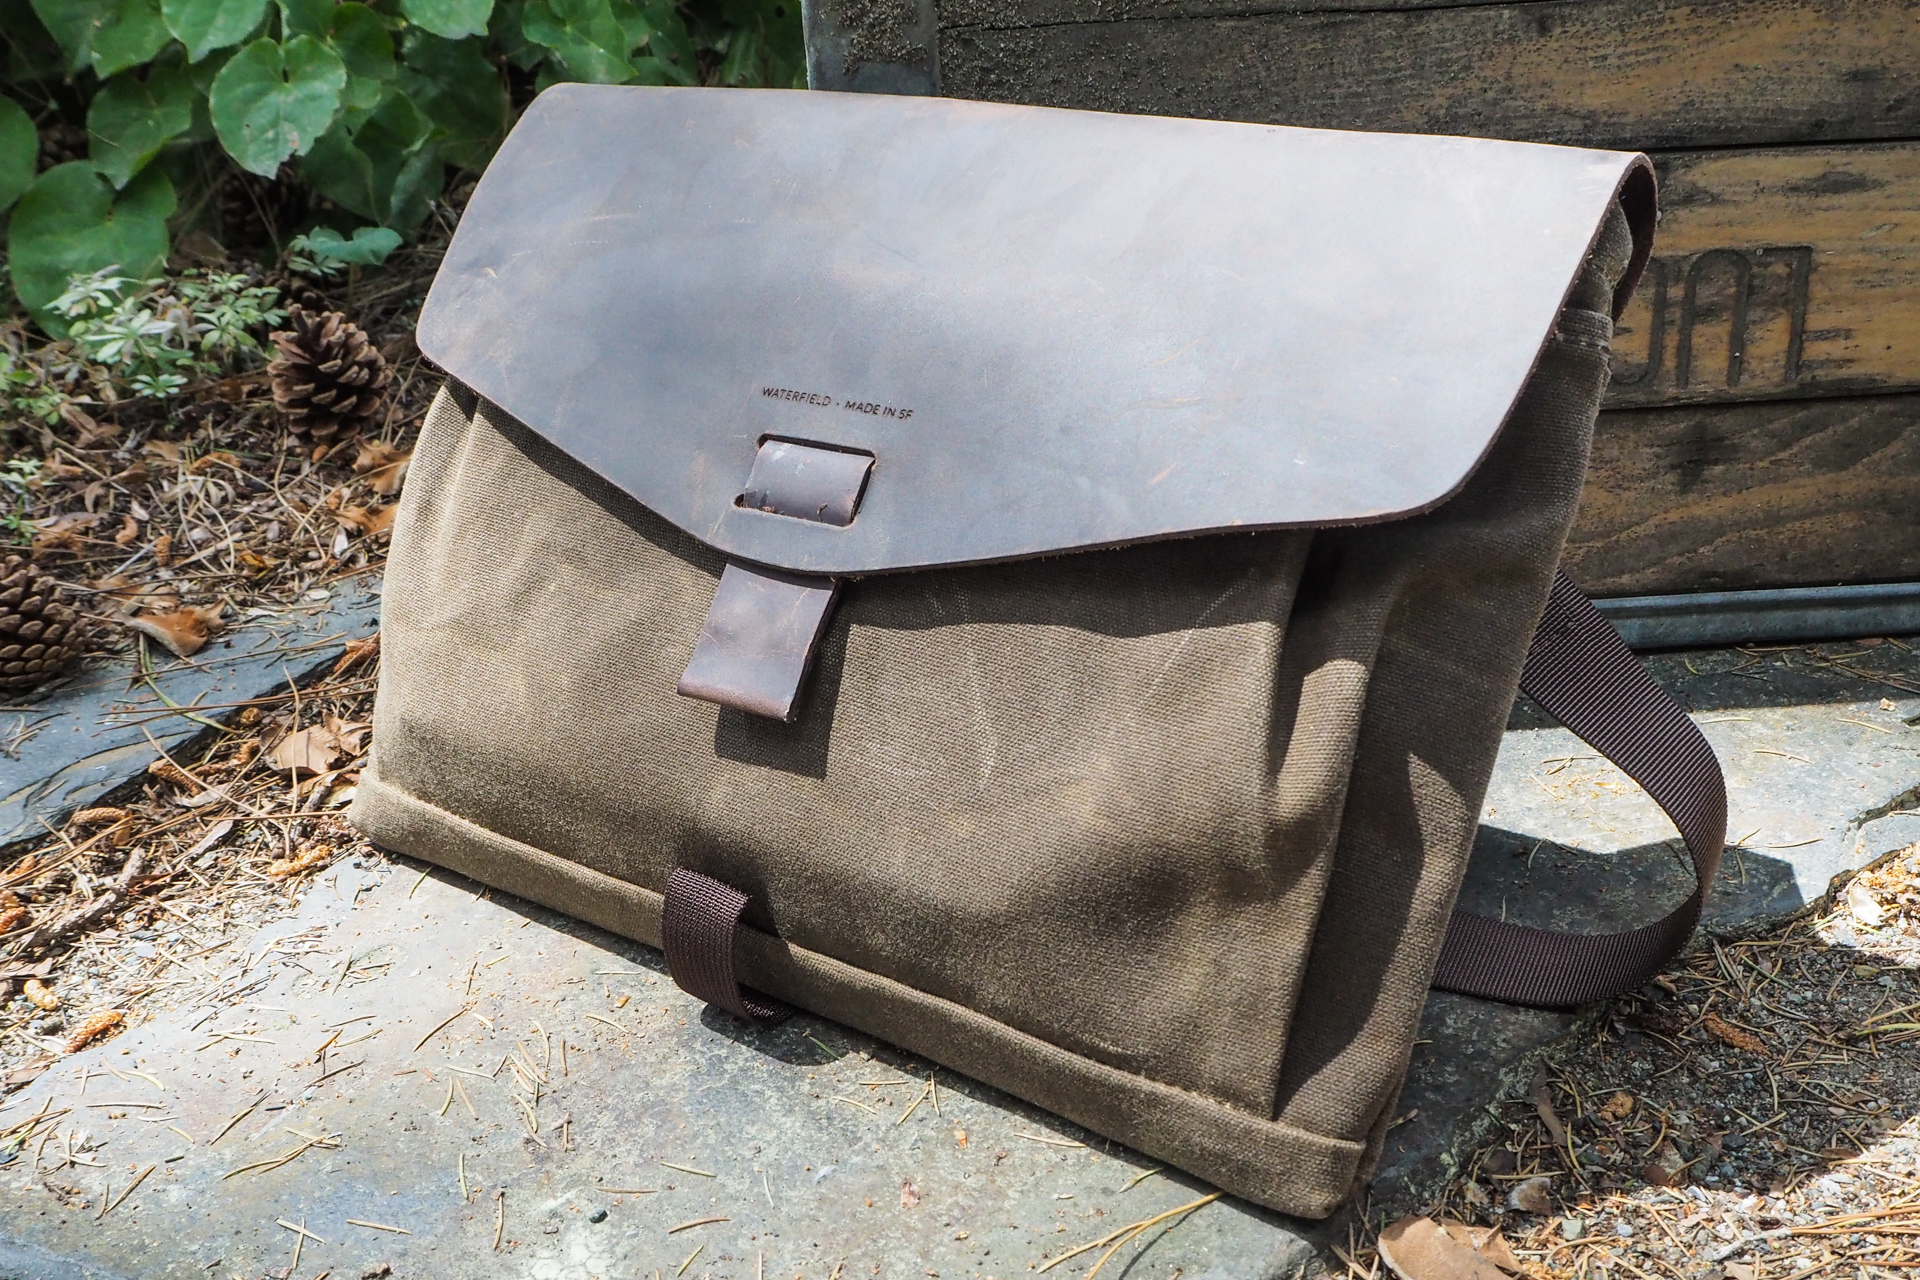 Waxed canvas bags from Waterfield, Manhattan Portage, Saddleback and more – TechCrunch 2